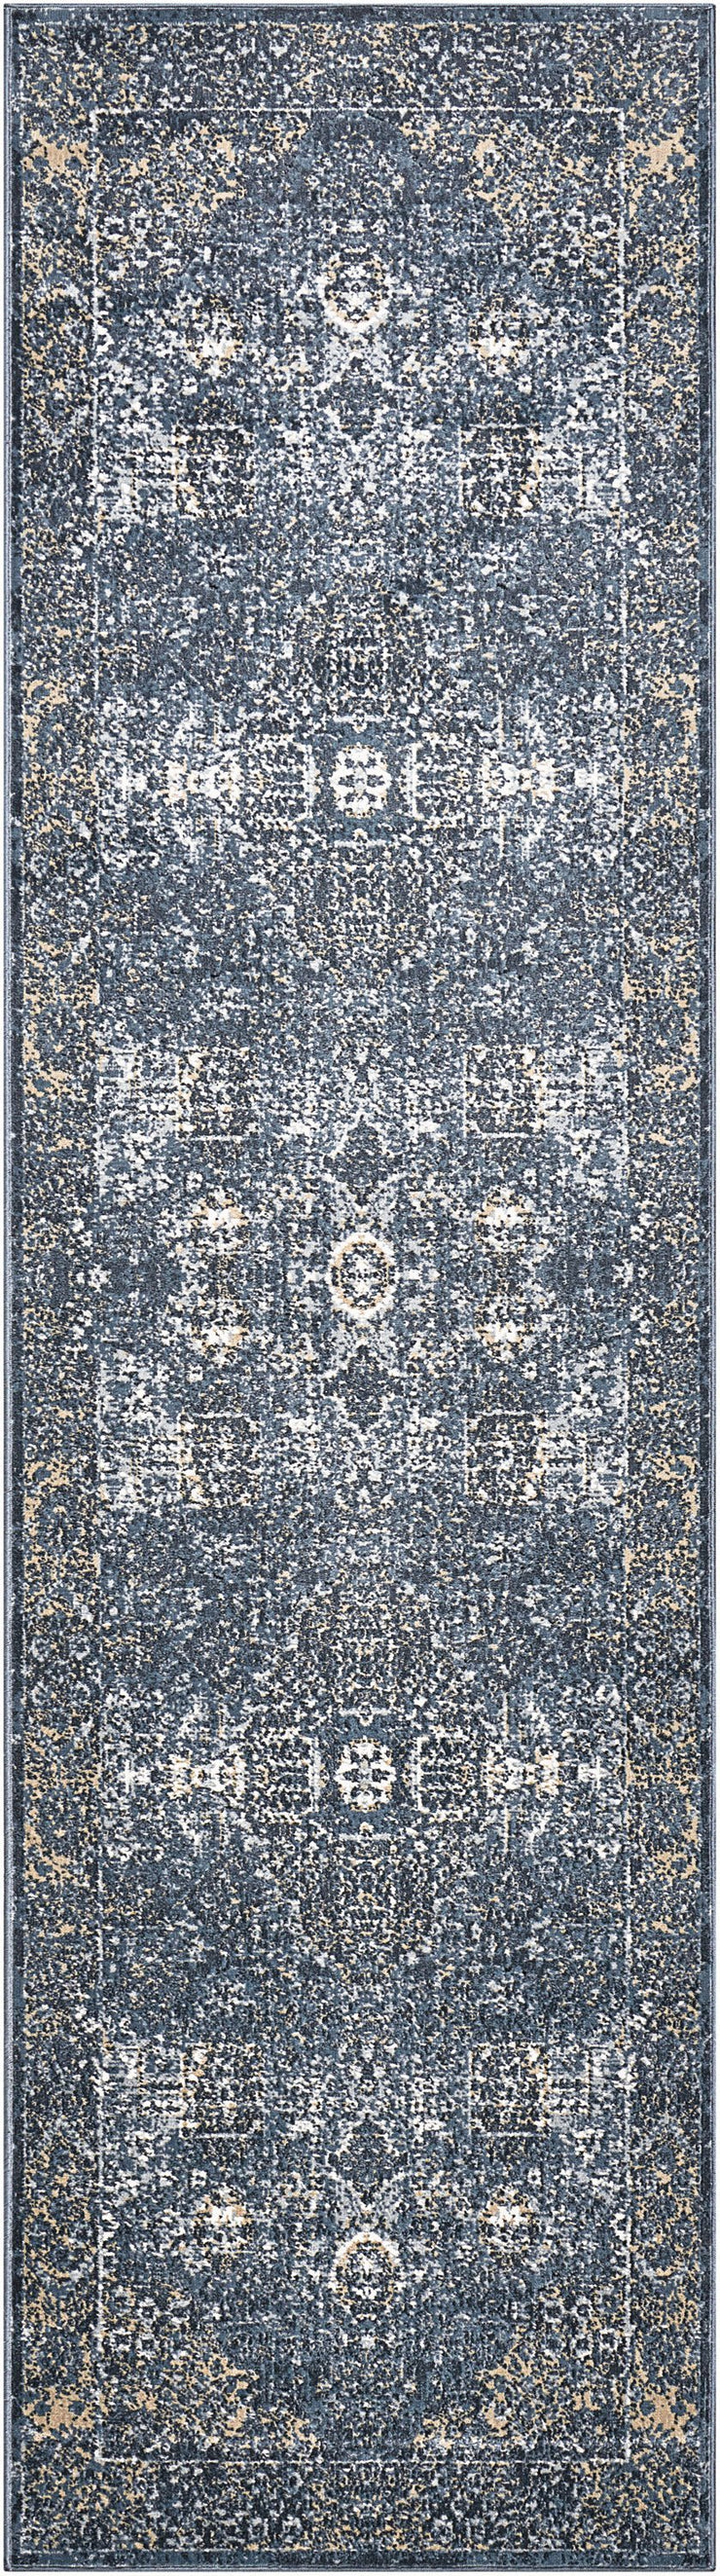 Malta Rug in Navy by Kathy Ireland